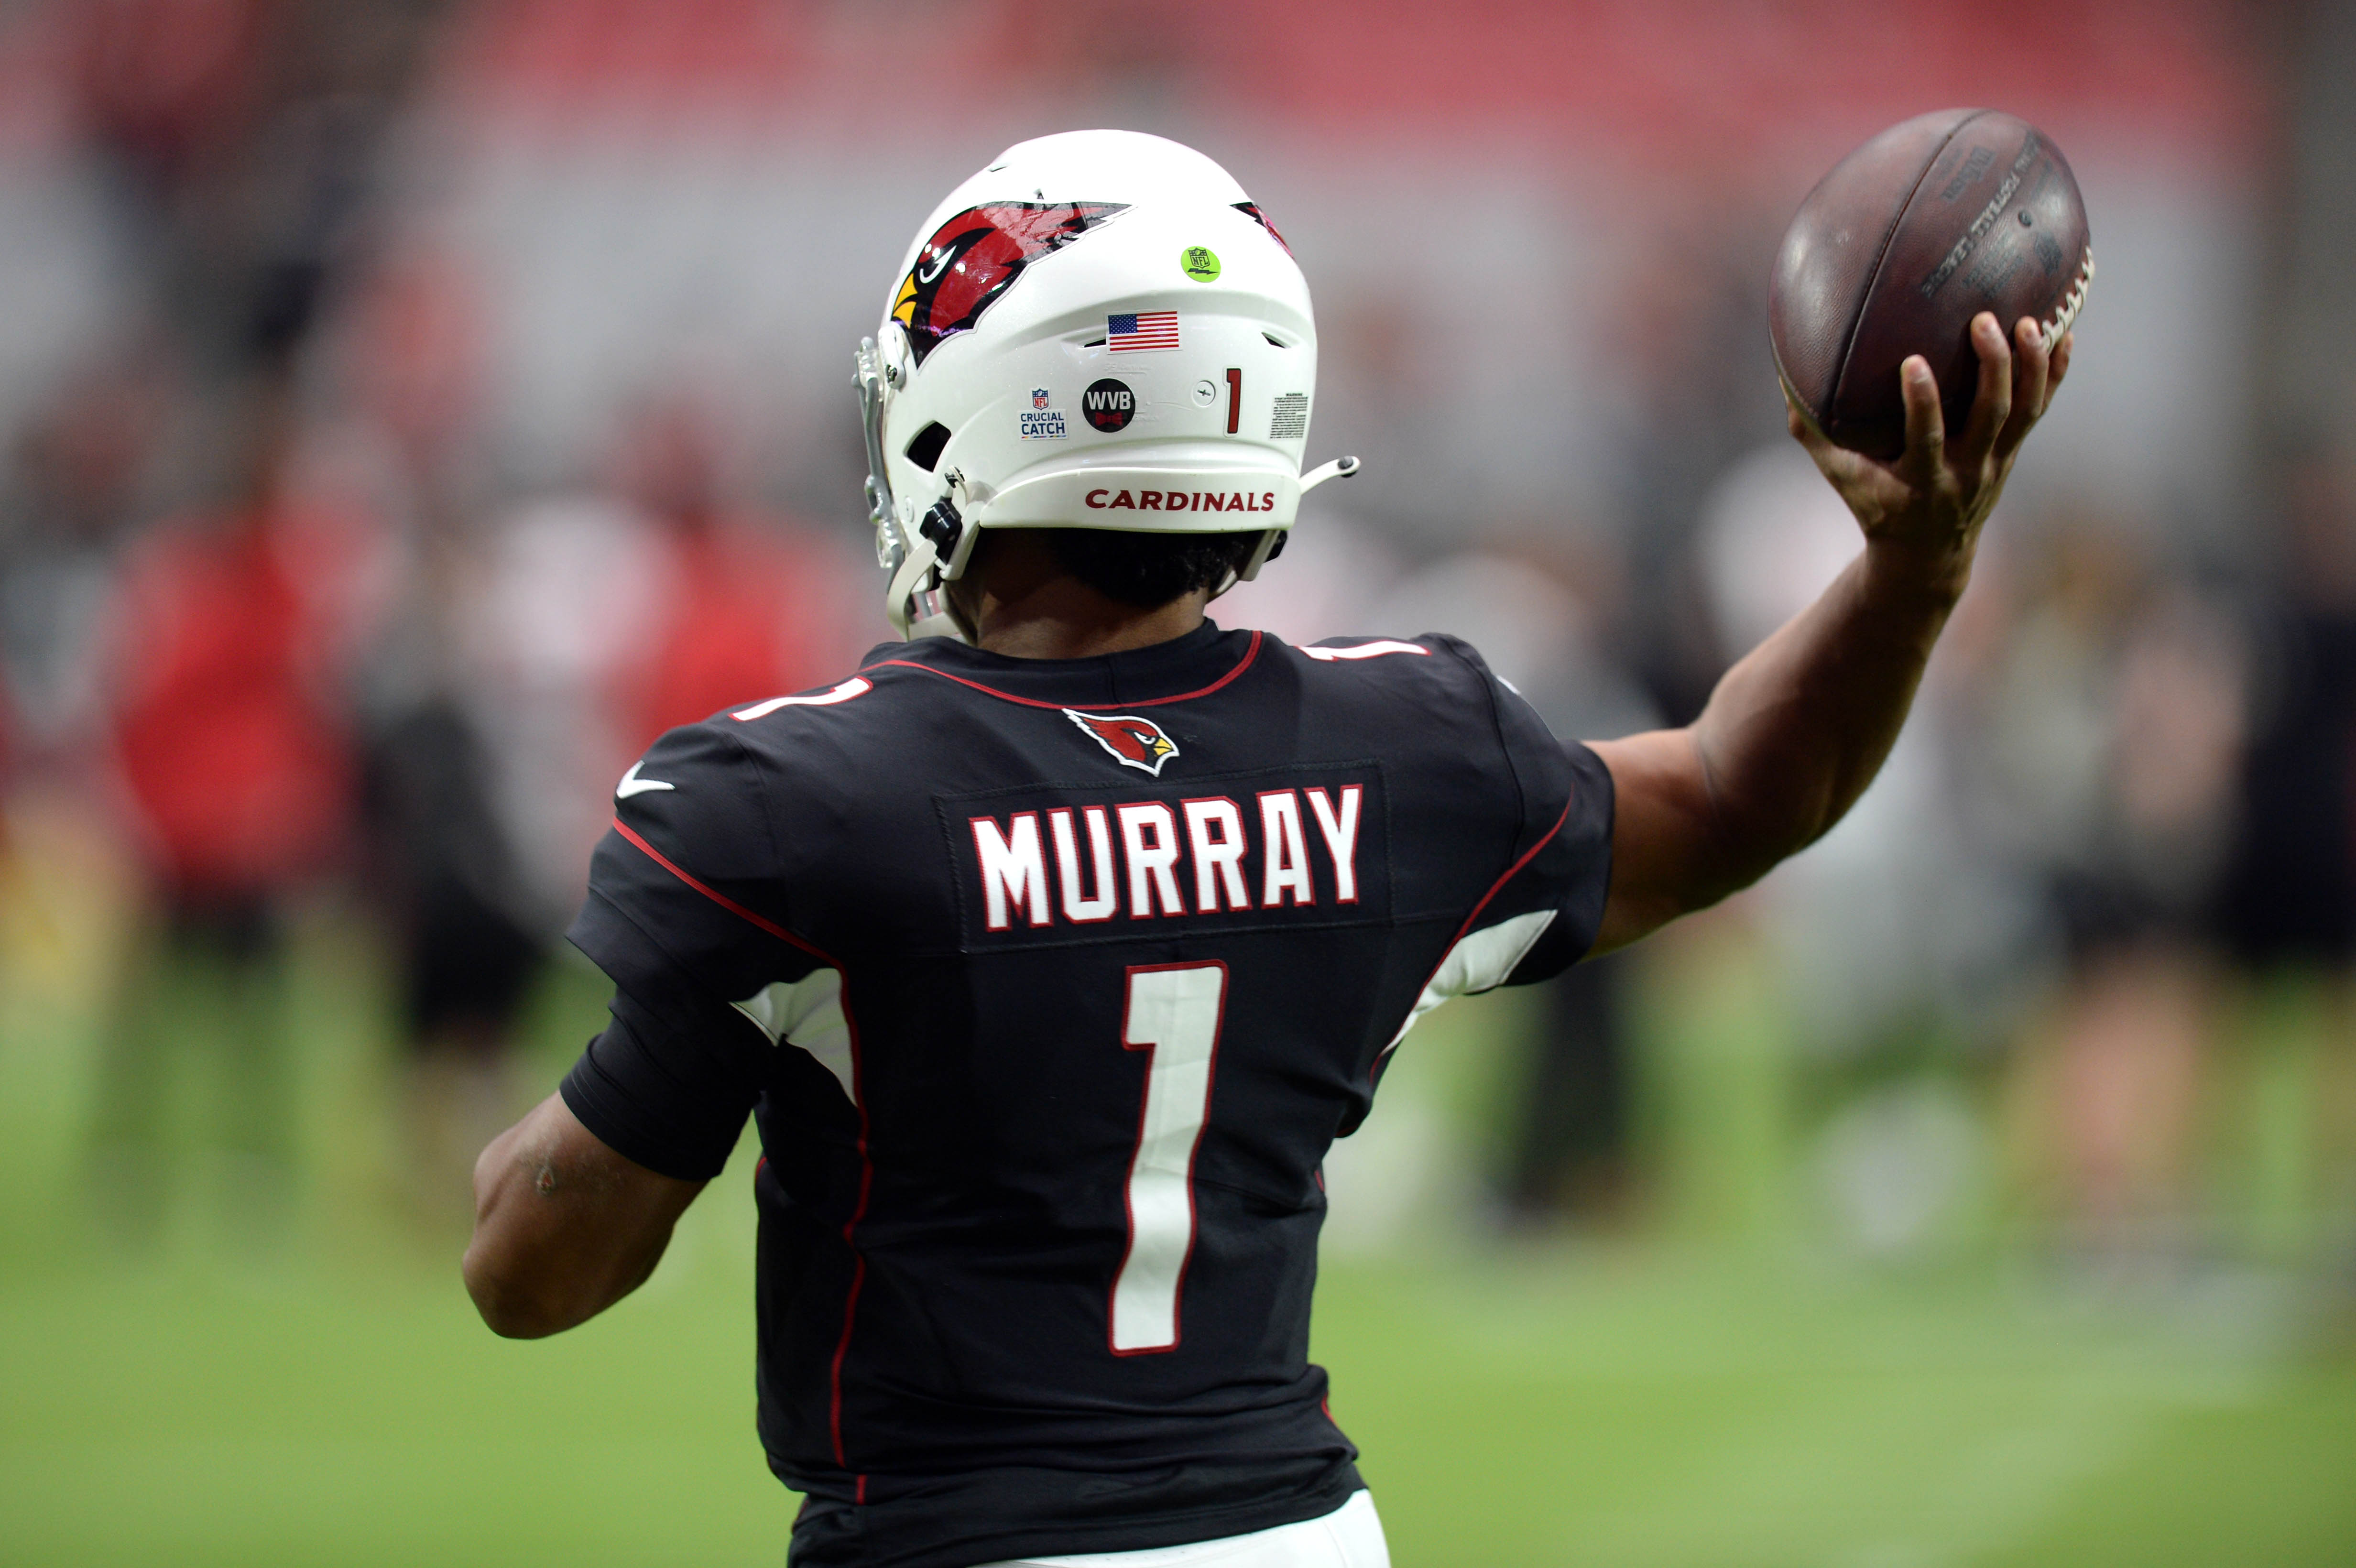 Sunday Morning Joe: A Top Draft Pick, Future Hall of Famer and Lamar Jackson Are Why the Steelers Won't Overlook the Cardinals